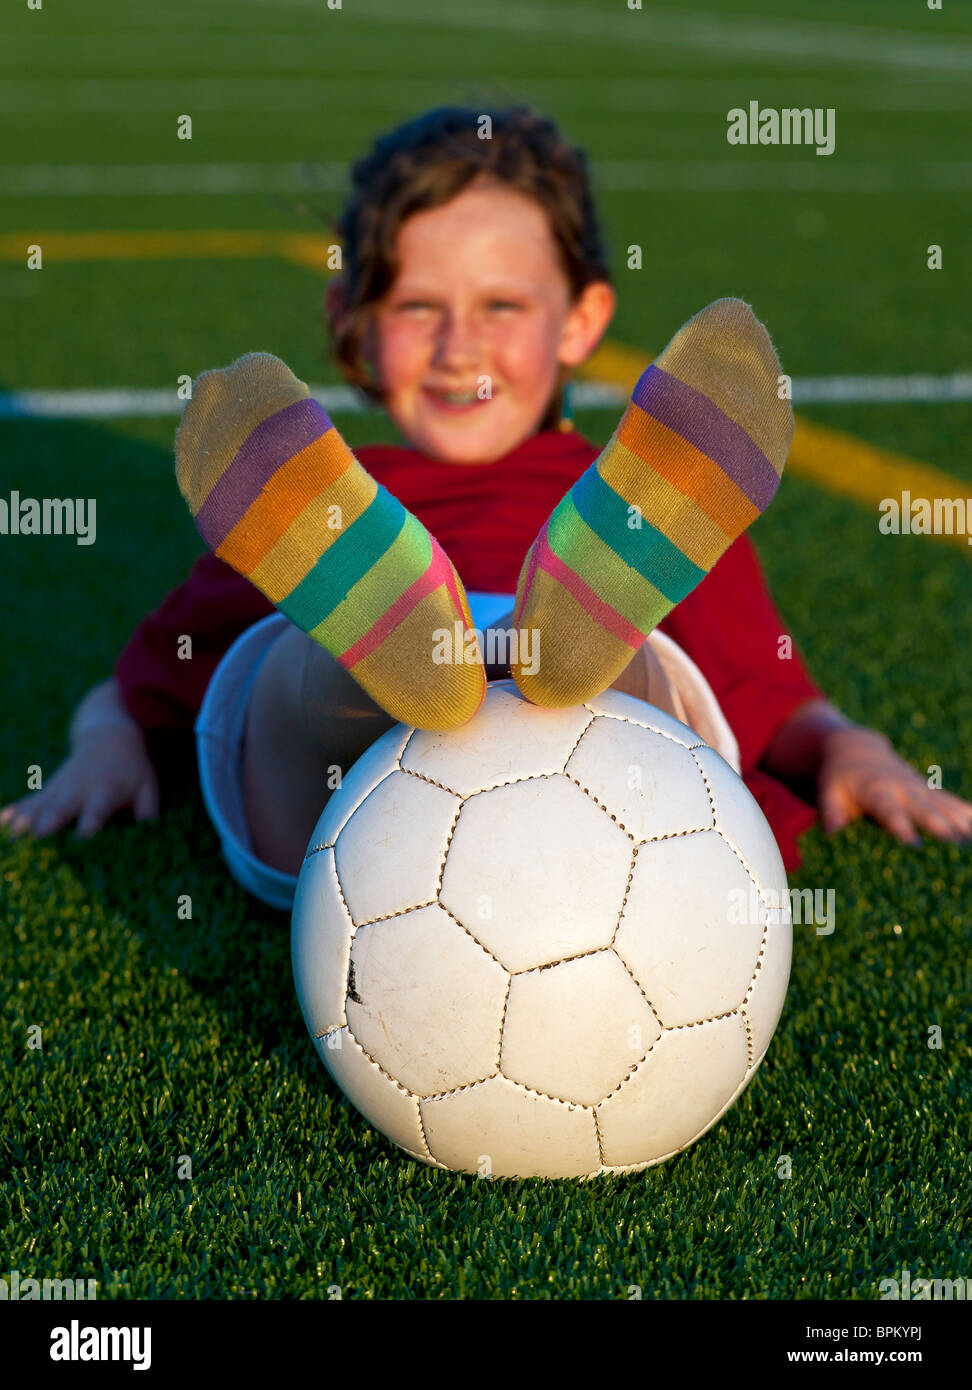 Portrait of girl with soccer ball. - Stock Image